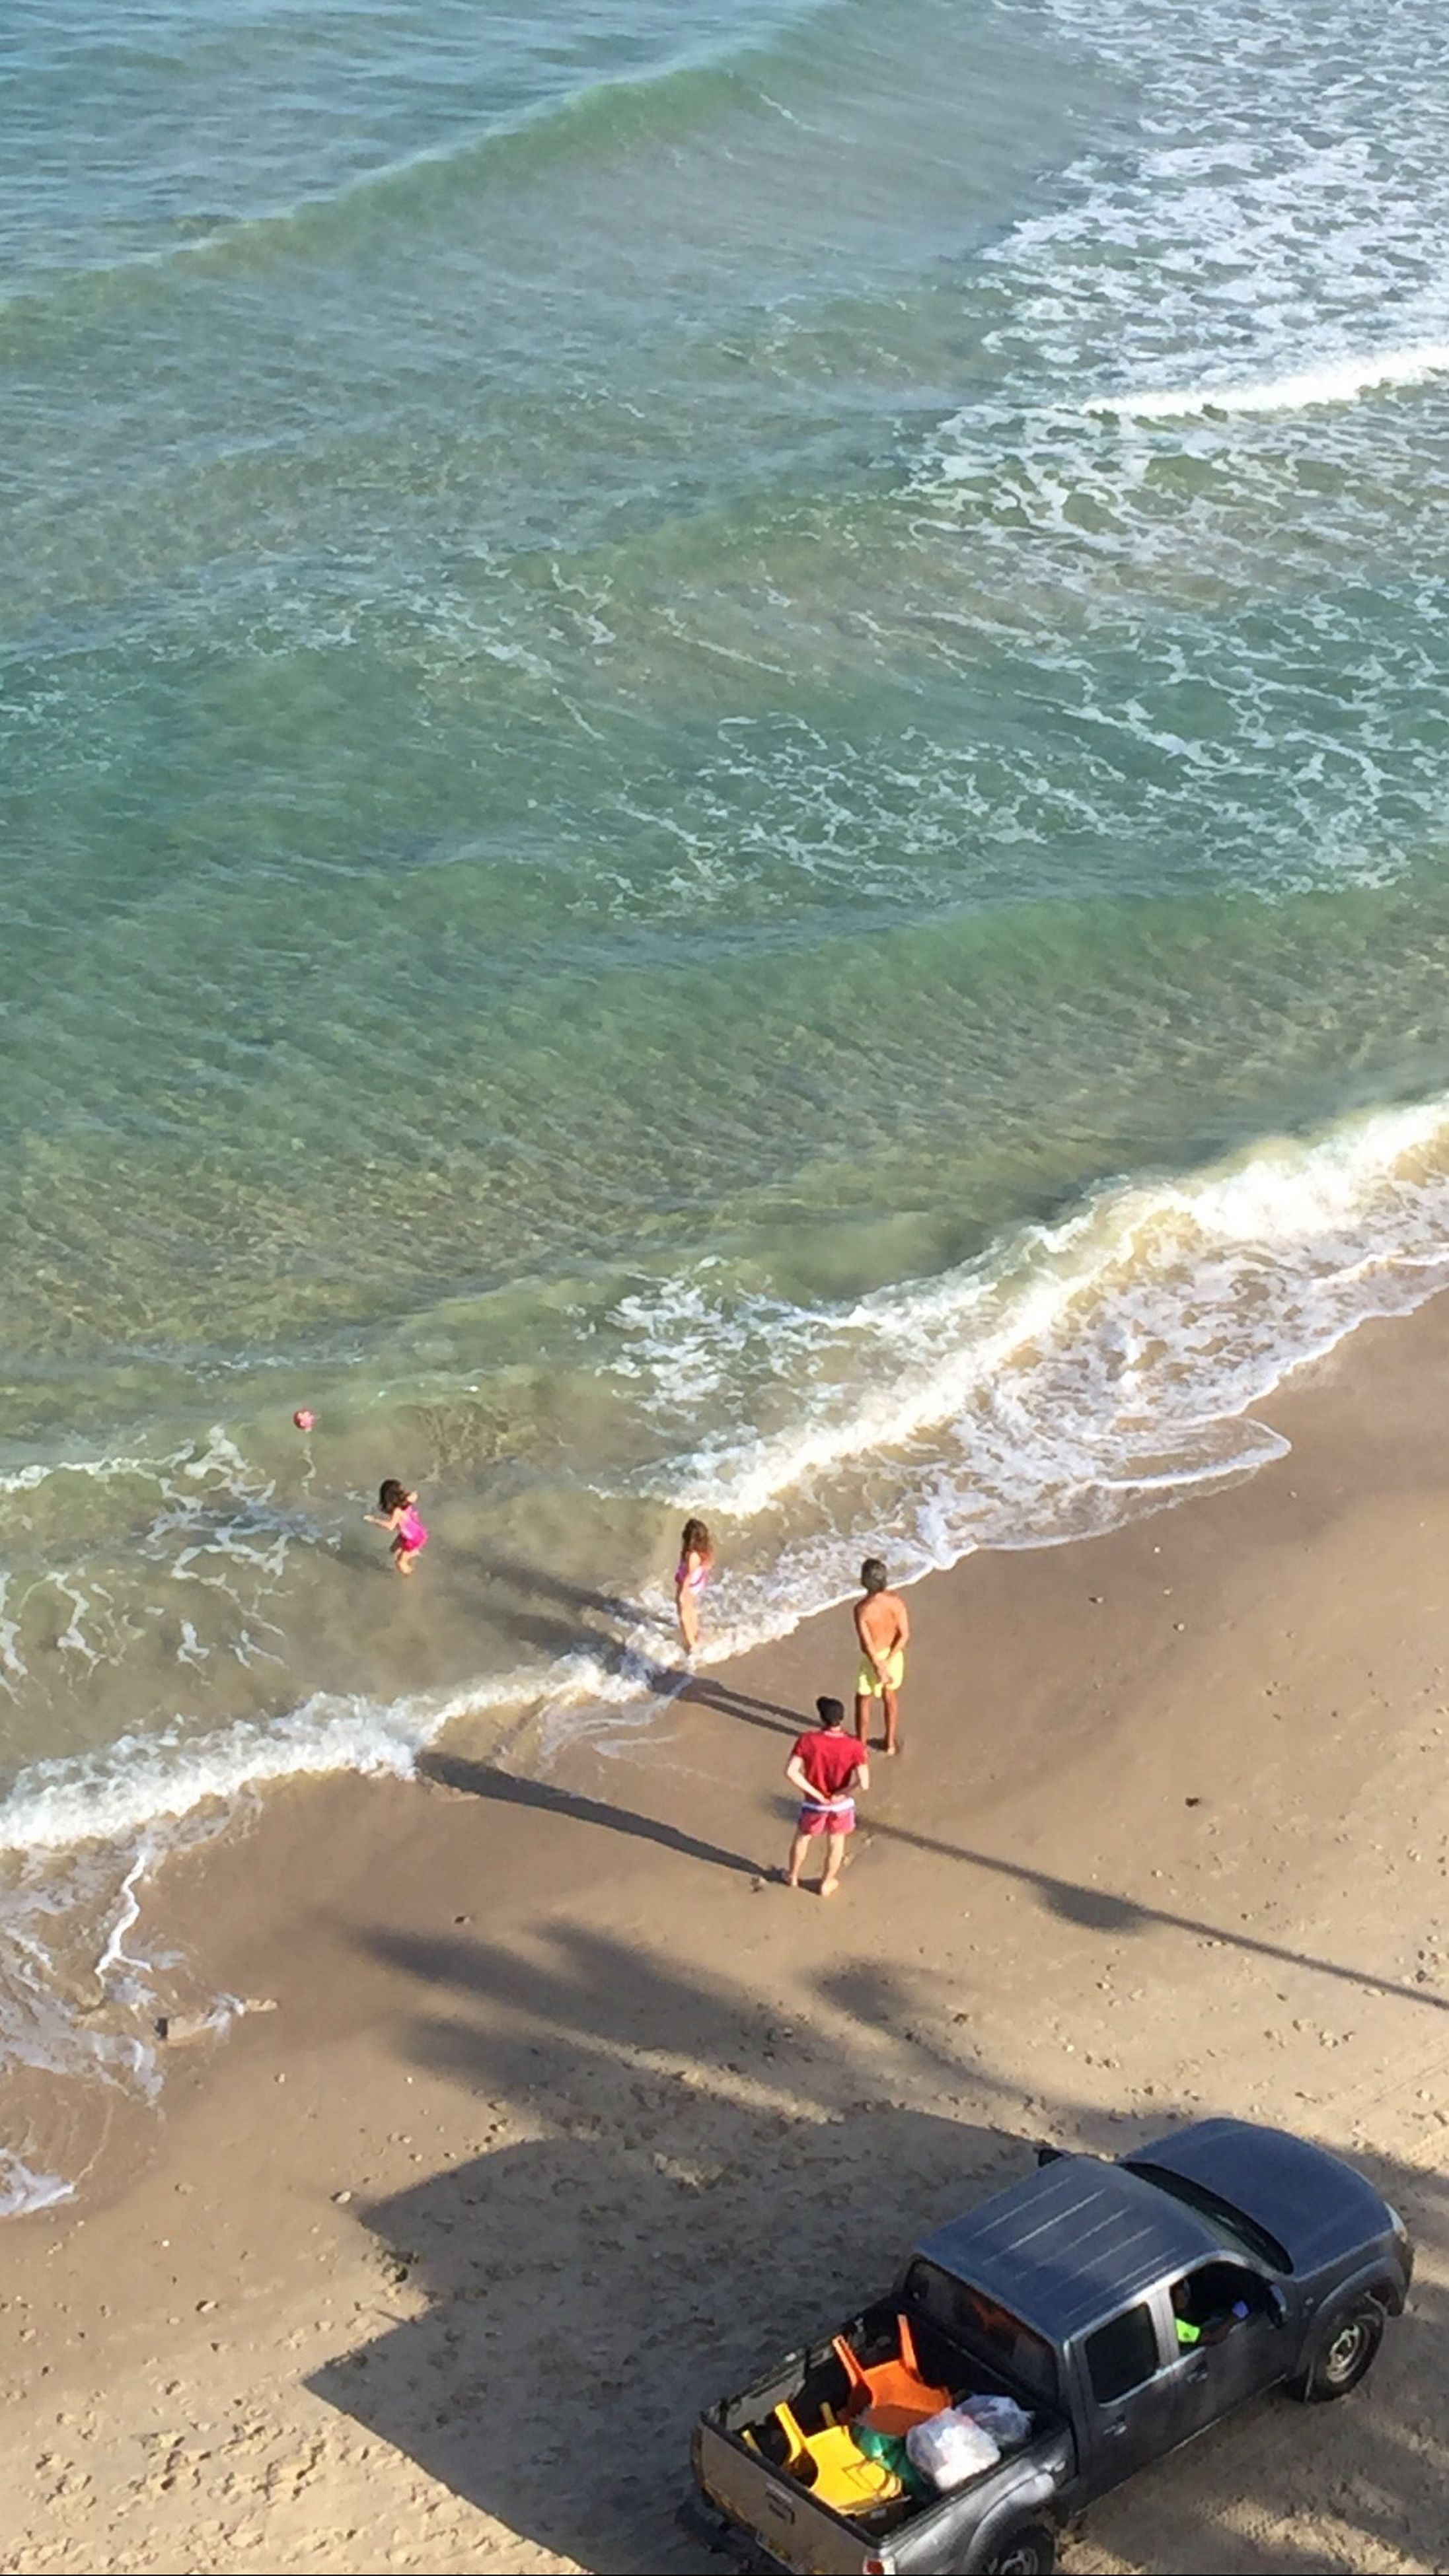 water, sea, beach, leisure activity, lifestyles, high angle view, shore, wave, surf, vacations, sand, enjoyment, summer, men, weekend activities, motion, nature, day, fun